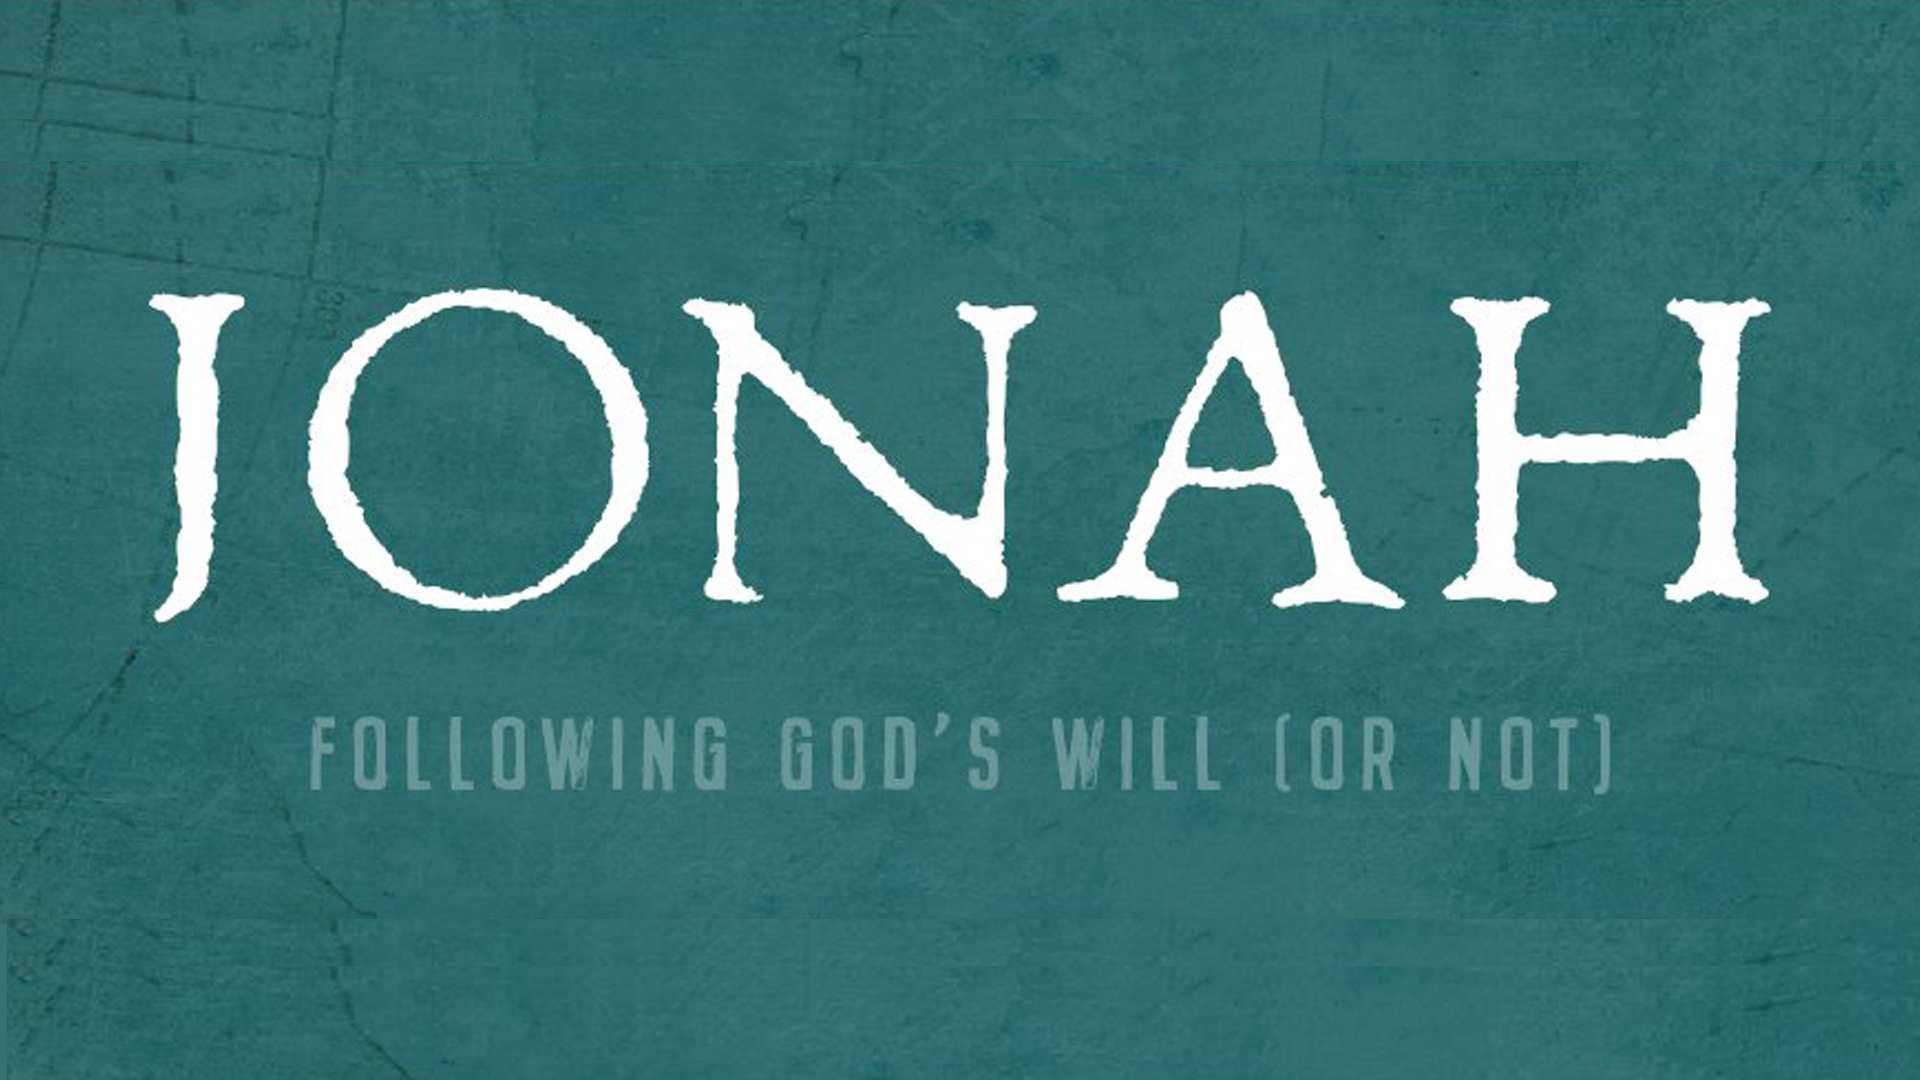 Jonah - Remaining in God's Will [and the Blessings from It]